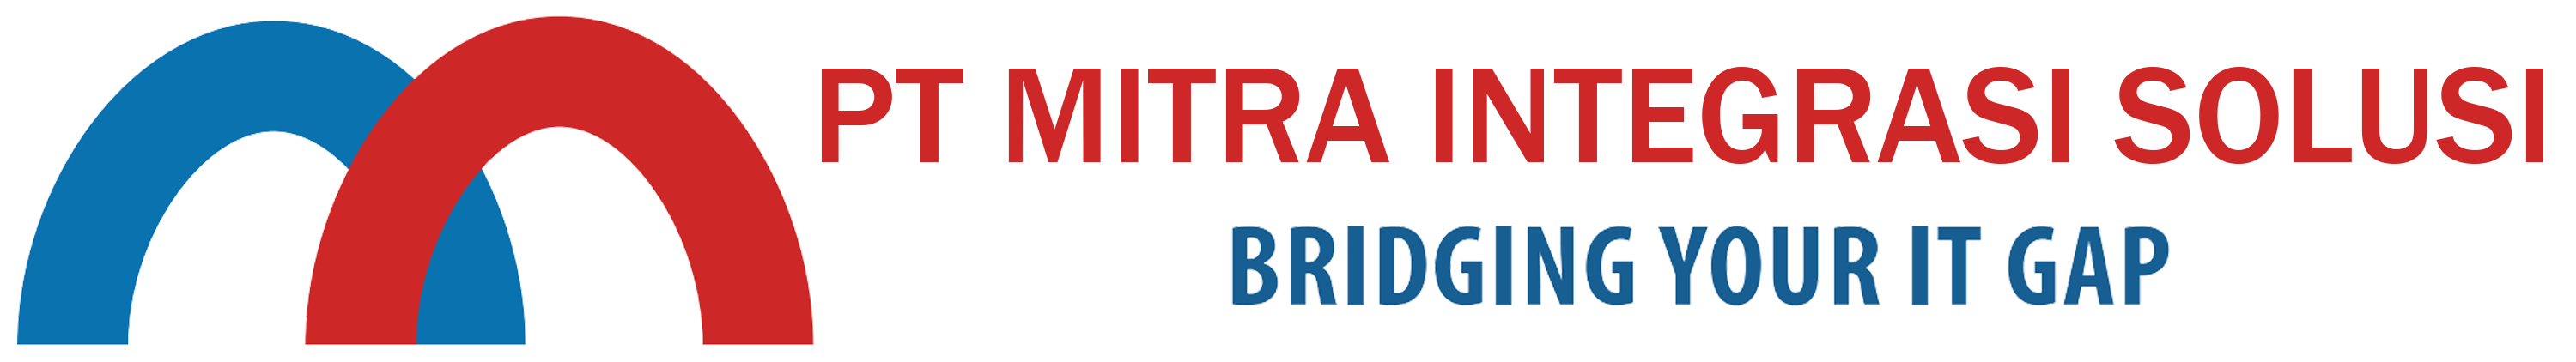 Logo - PT Mitra Integrasi Solusi - Bridging Your IT Gap